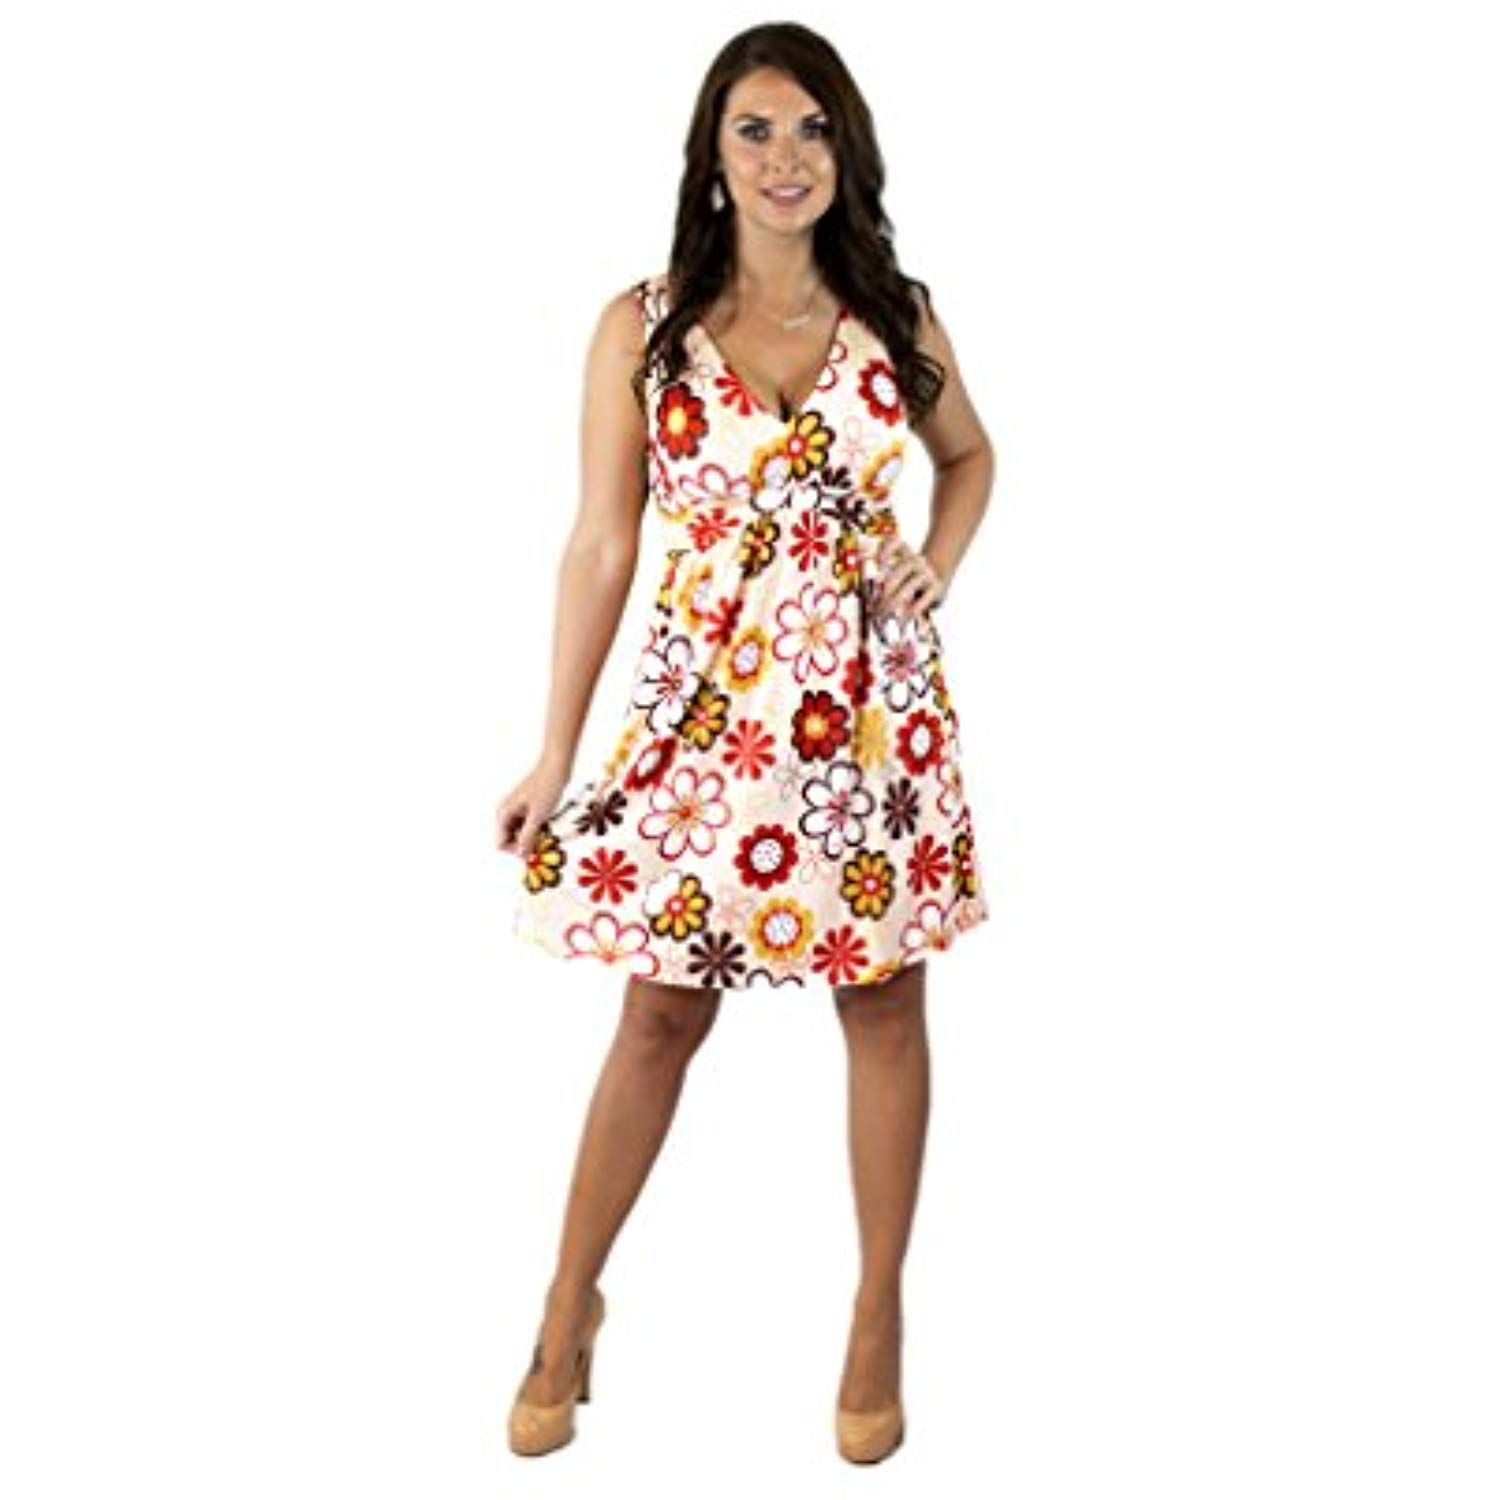 Women S Sleeveless Summer Sun Dress Want To Know More Click On The Image This Is An Affiliate Link Clothing Summer Dresses Clothes Sundress [ 1500 x 1500 Pixel ]